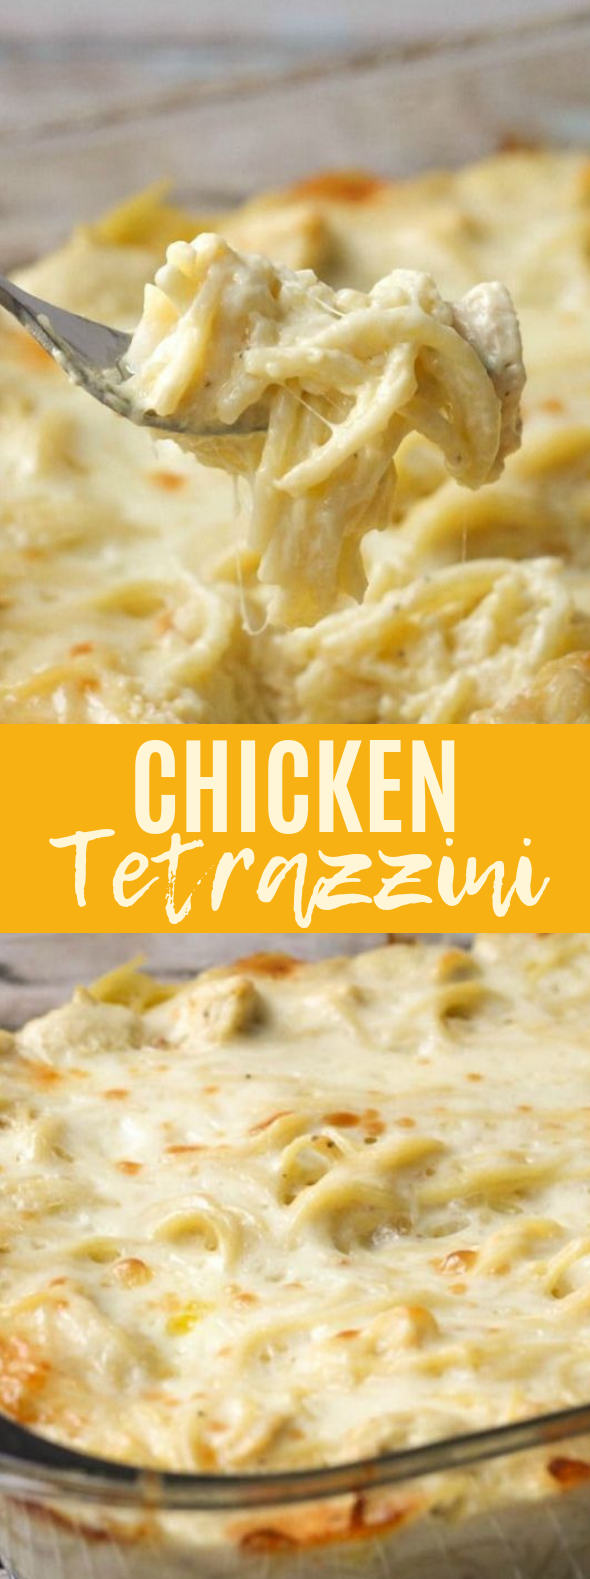 Chicken Tetrazzini #dinner #pasta